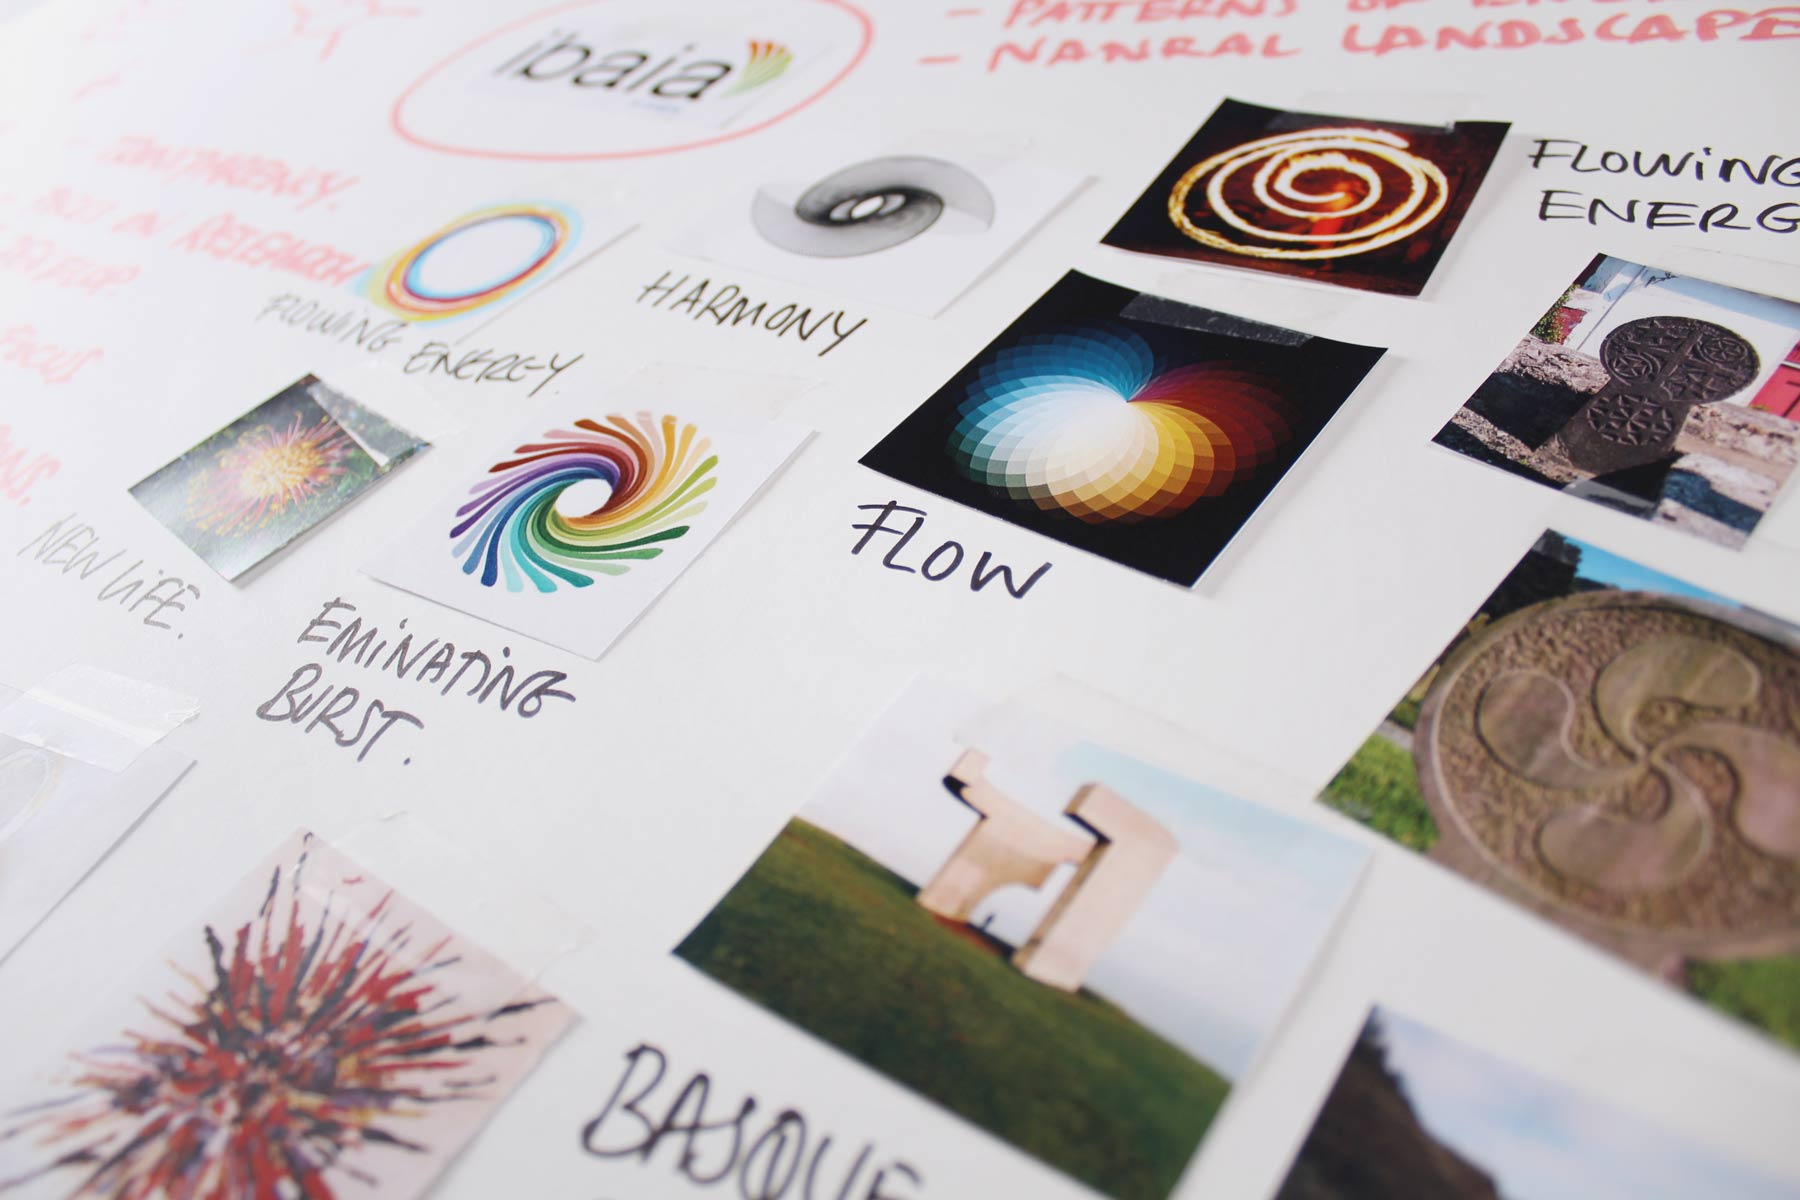 Following strategic orientation with the client, the creative team develop conceptual themes for the brand.